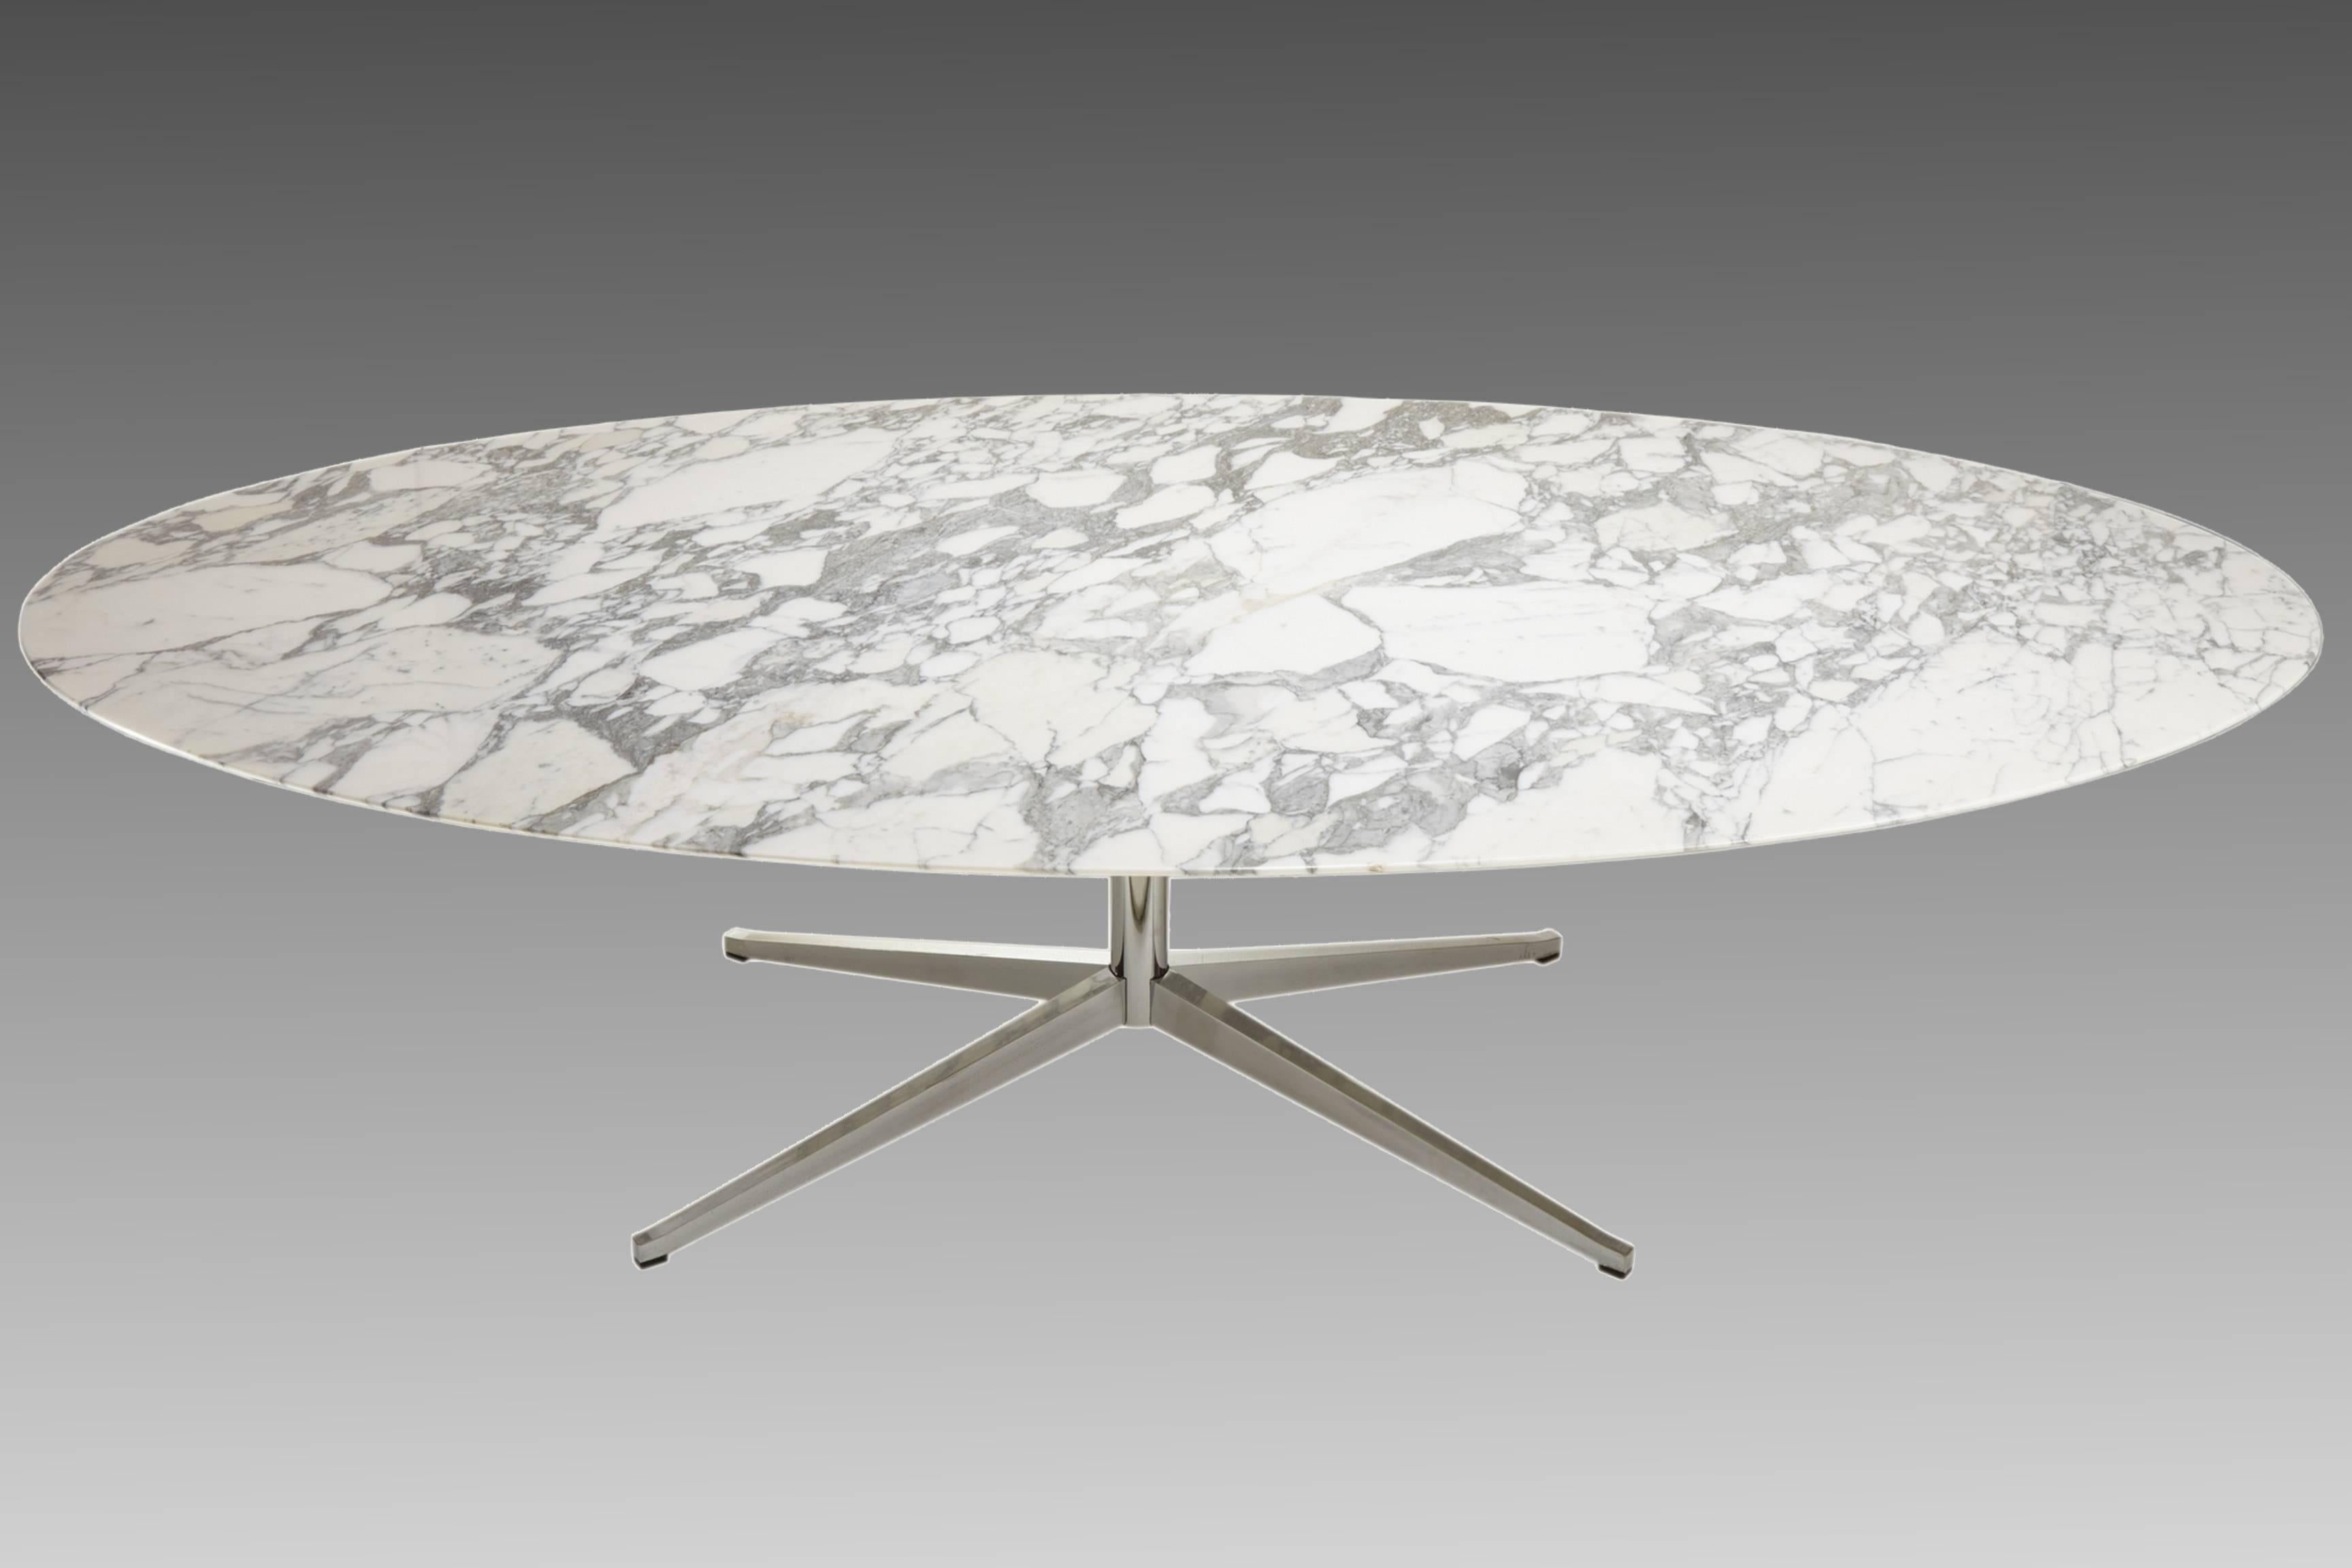 Superieur Large Ovale Dining Table In Arabescato Marble By Florence Knoll, Circa 1965  At 1stdibs